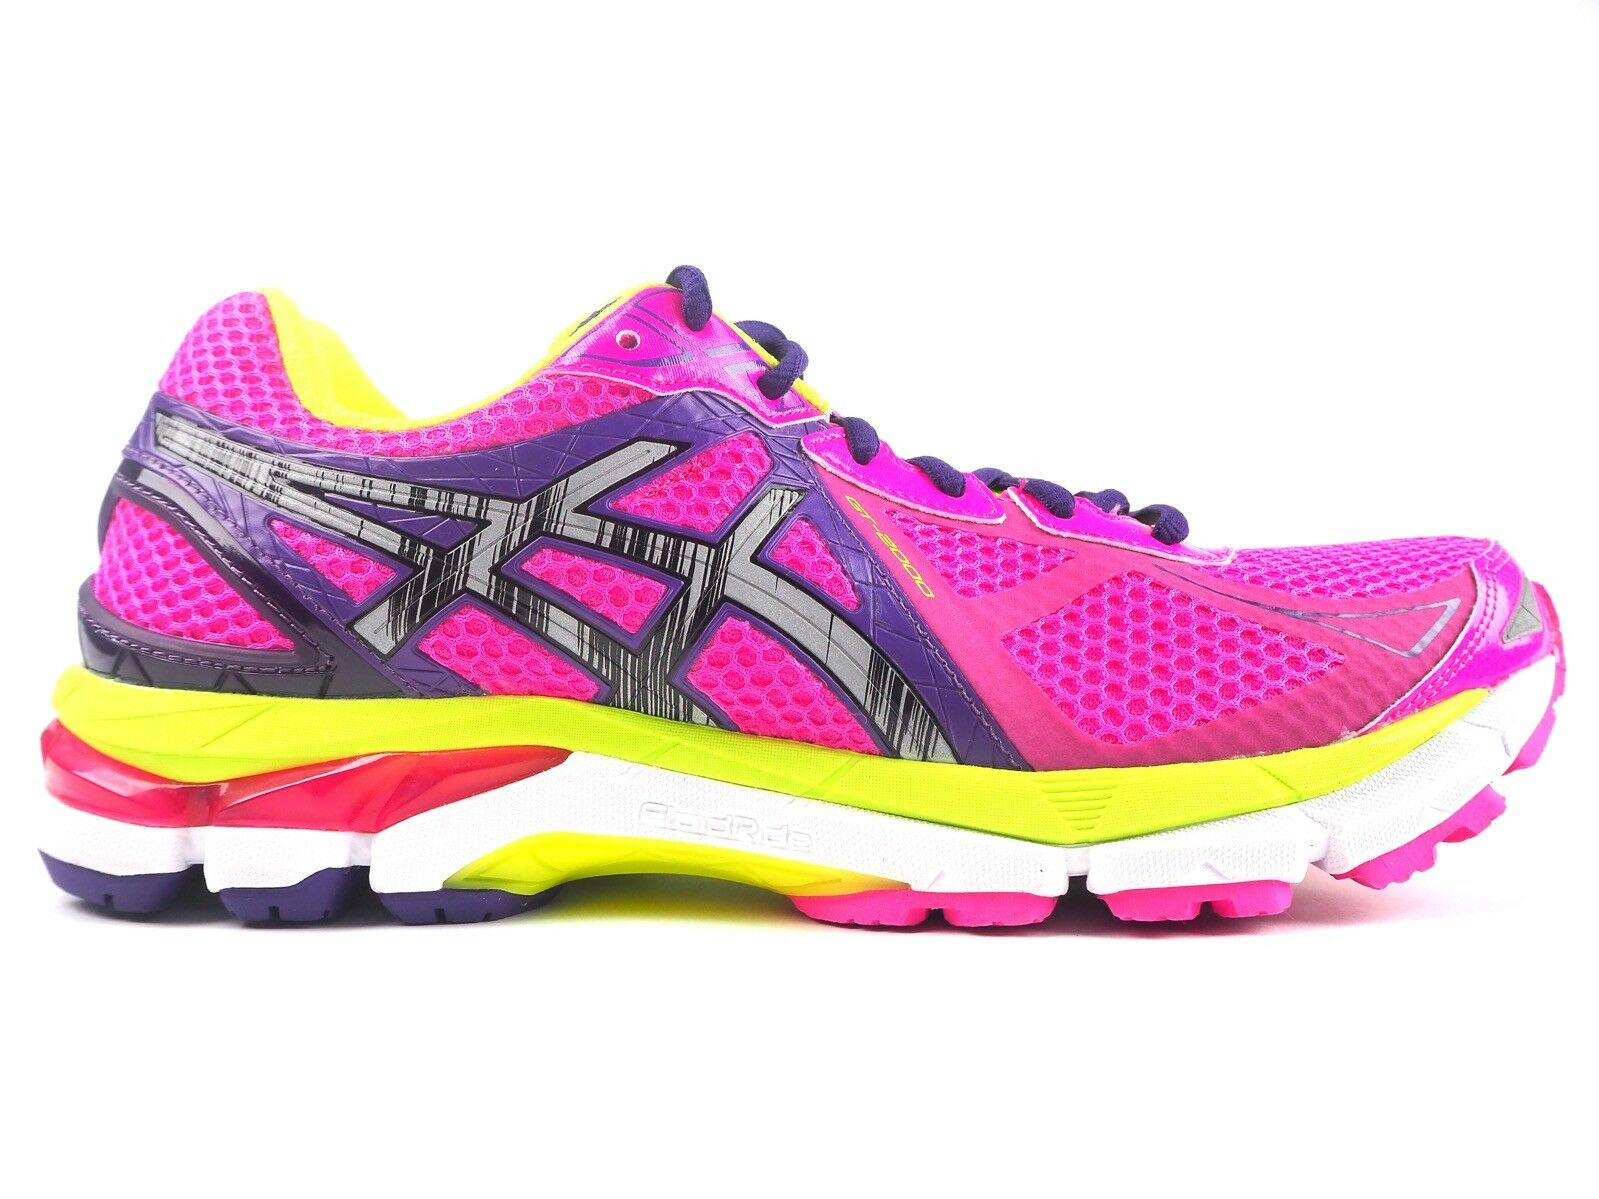 Womens Asics Gel 2000 3 Lite Show T550Q 3593 Lace Up Pink Running Mesh Trainers